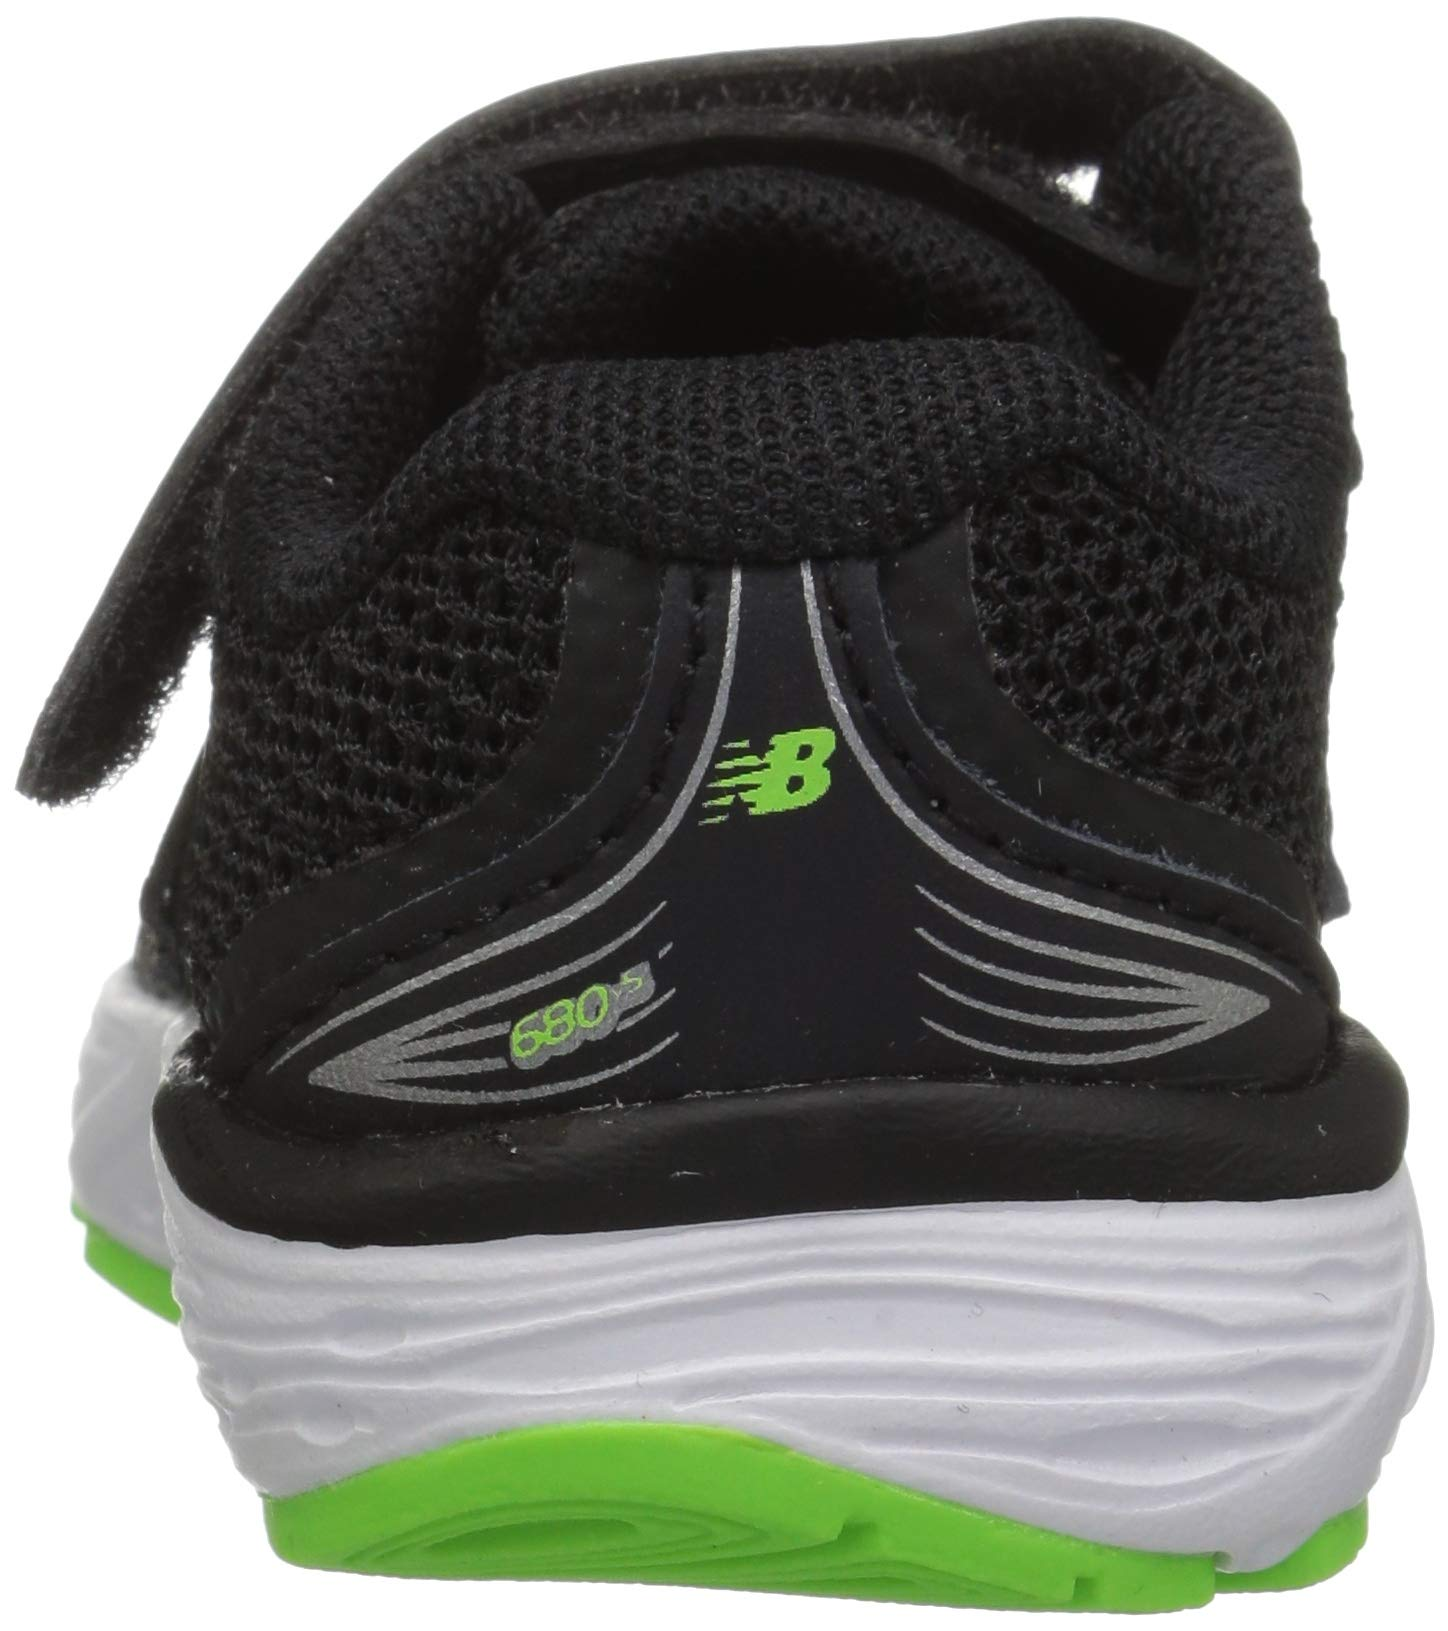 New Balance Boys' 680v5 Hook and Loop Running Shoe Black/RBG Green 2 M US Infant by New Balance (Image #2)